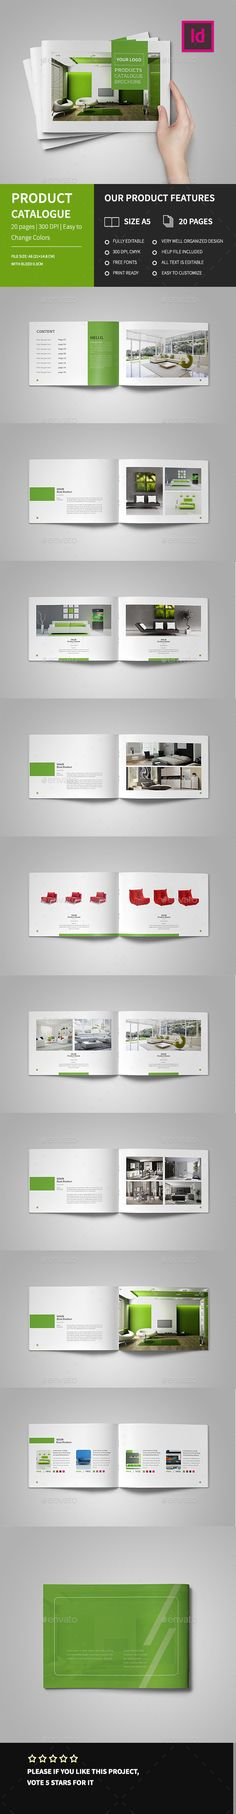 Buy Product Catalog Brochure by GraphicGrape on GraphicRiver. Product Catalog Brochure Easy to edit, you can change Green accent color throughout the whole document at once, p. Corporate Brochure Design, Brochure Layout, Brochure Template, Interior Design Layout, Layout Design, Web Design, Creative Design, Design Poster, Book Design